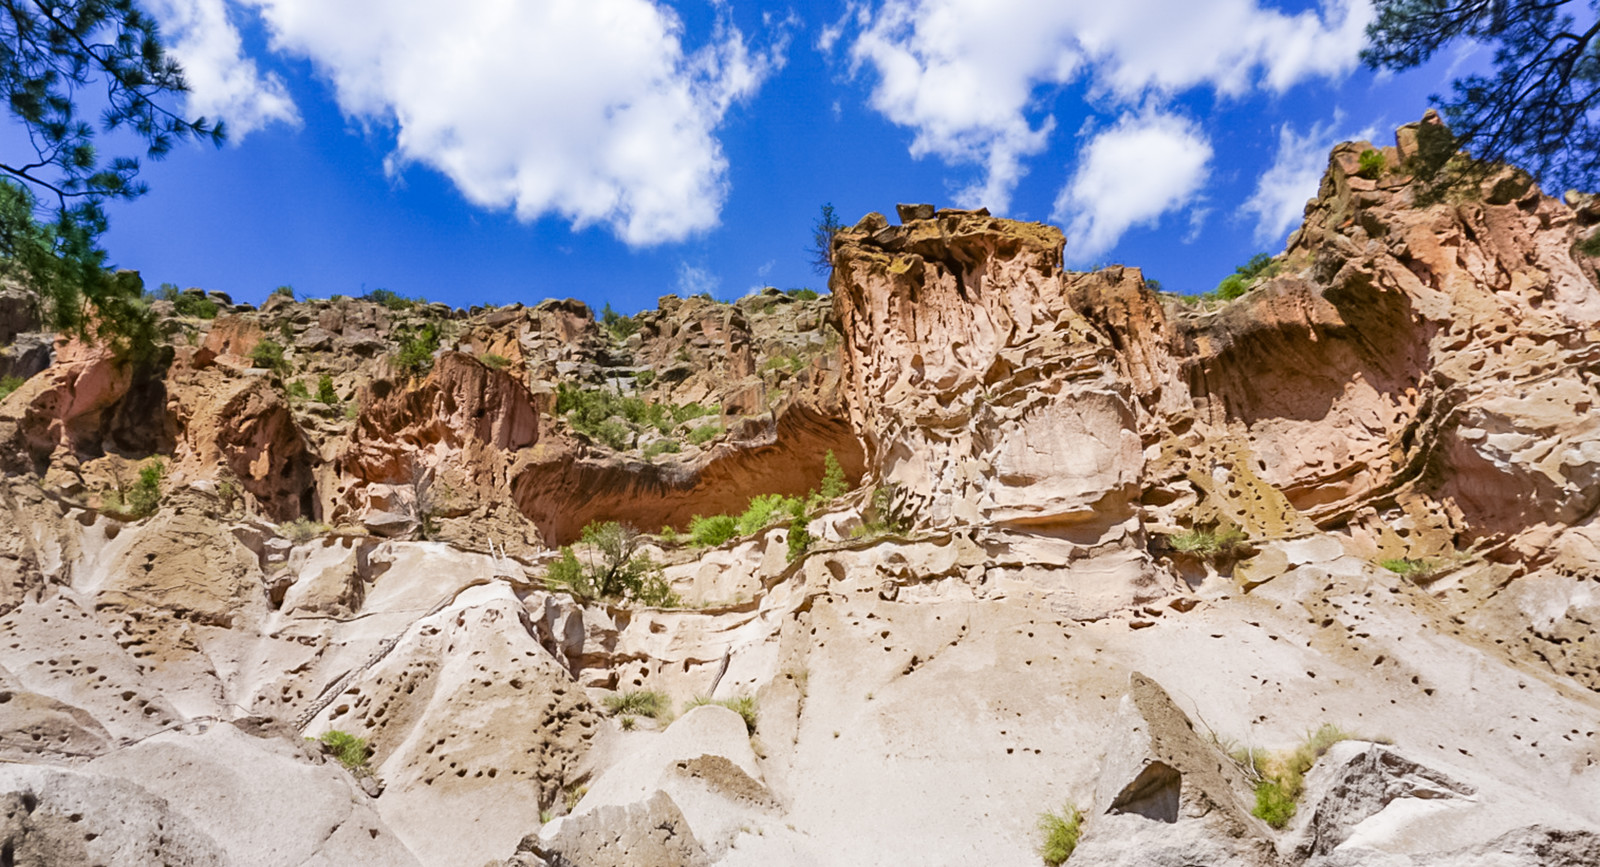 The Canyons at Bandelier National Monument Park